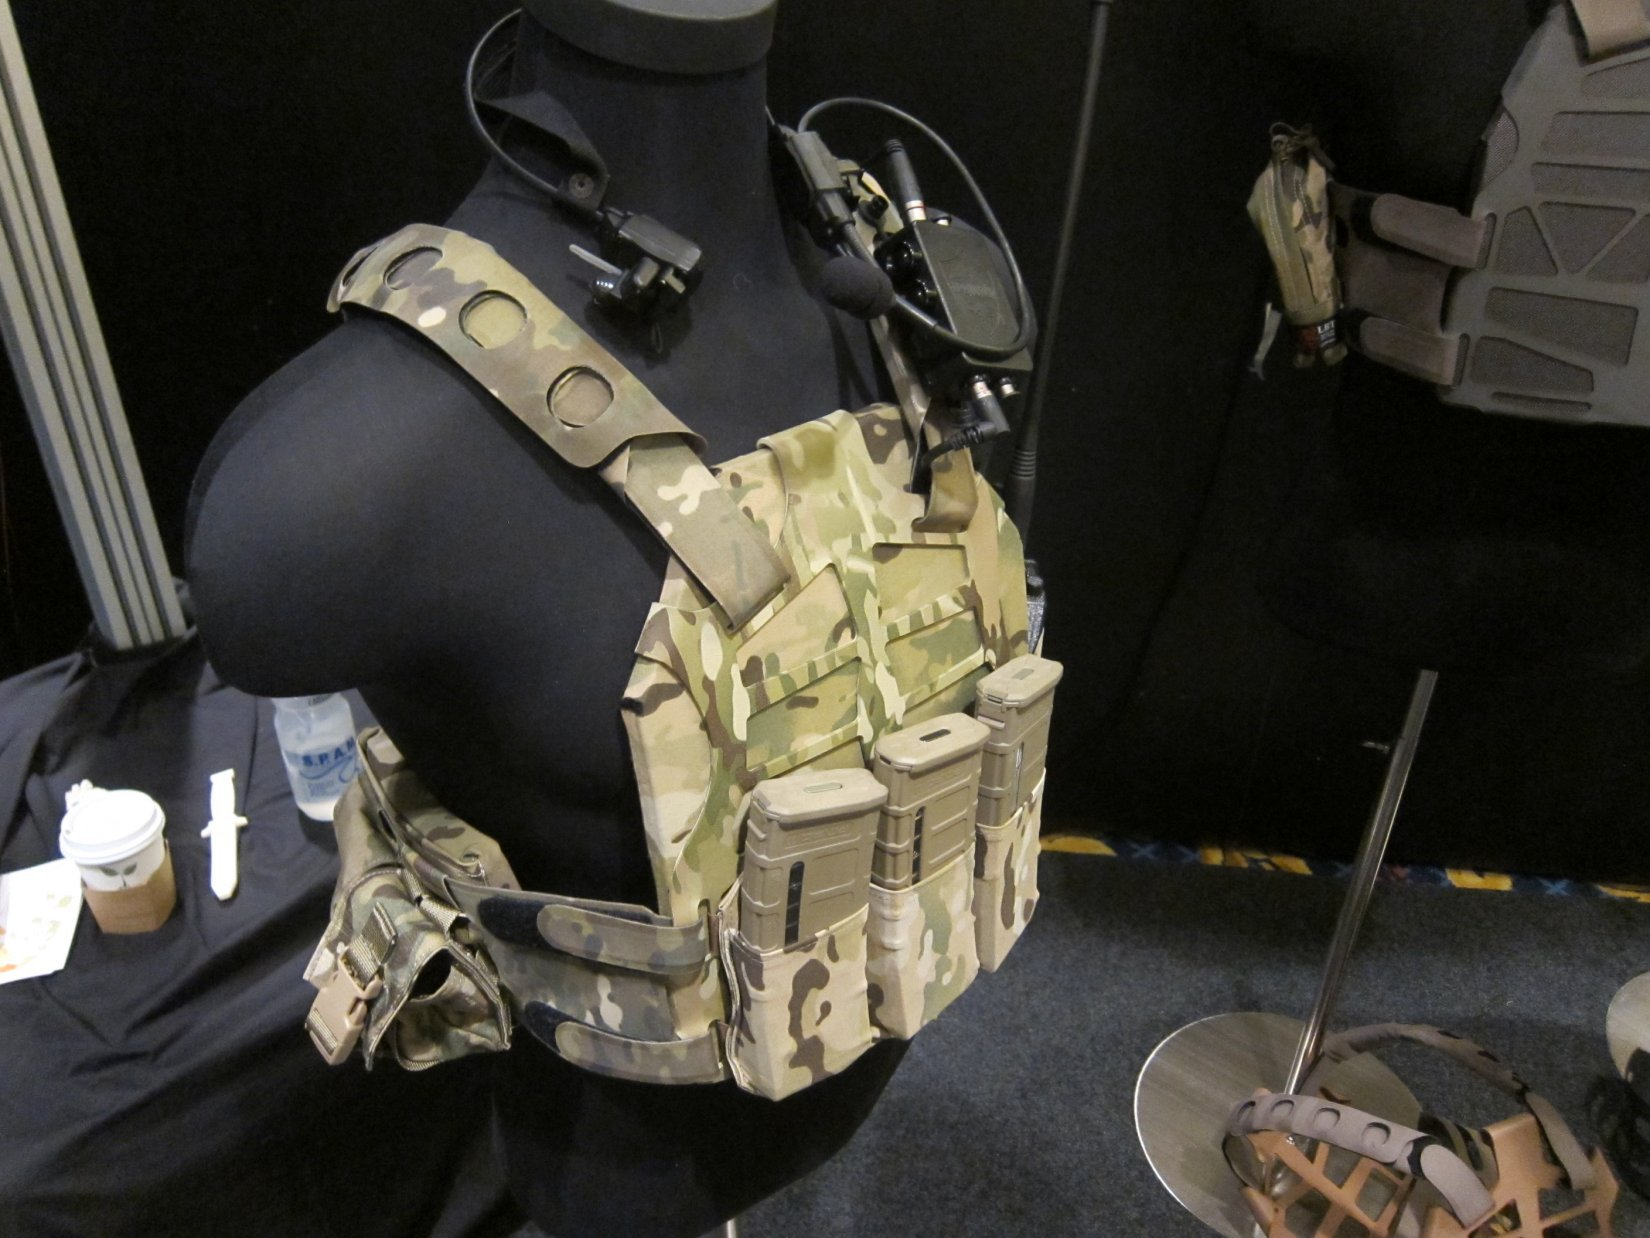 SS_Precision_Plate_Frame_Tactical_Armor_Plate_Carrier_Body_Armor_with_Velocity_Systems_API_BZ_Ballistic_Rifle_Plate_Armor_Plate_SHOT_Show_2012_DefenseReview.com_DR_7